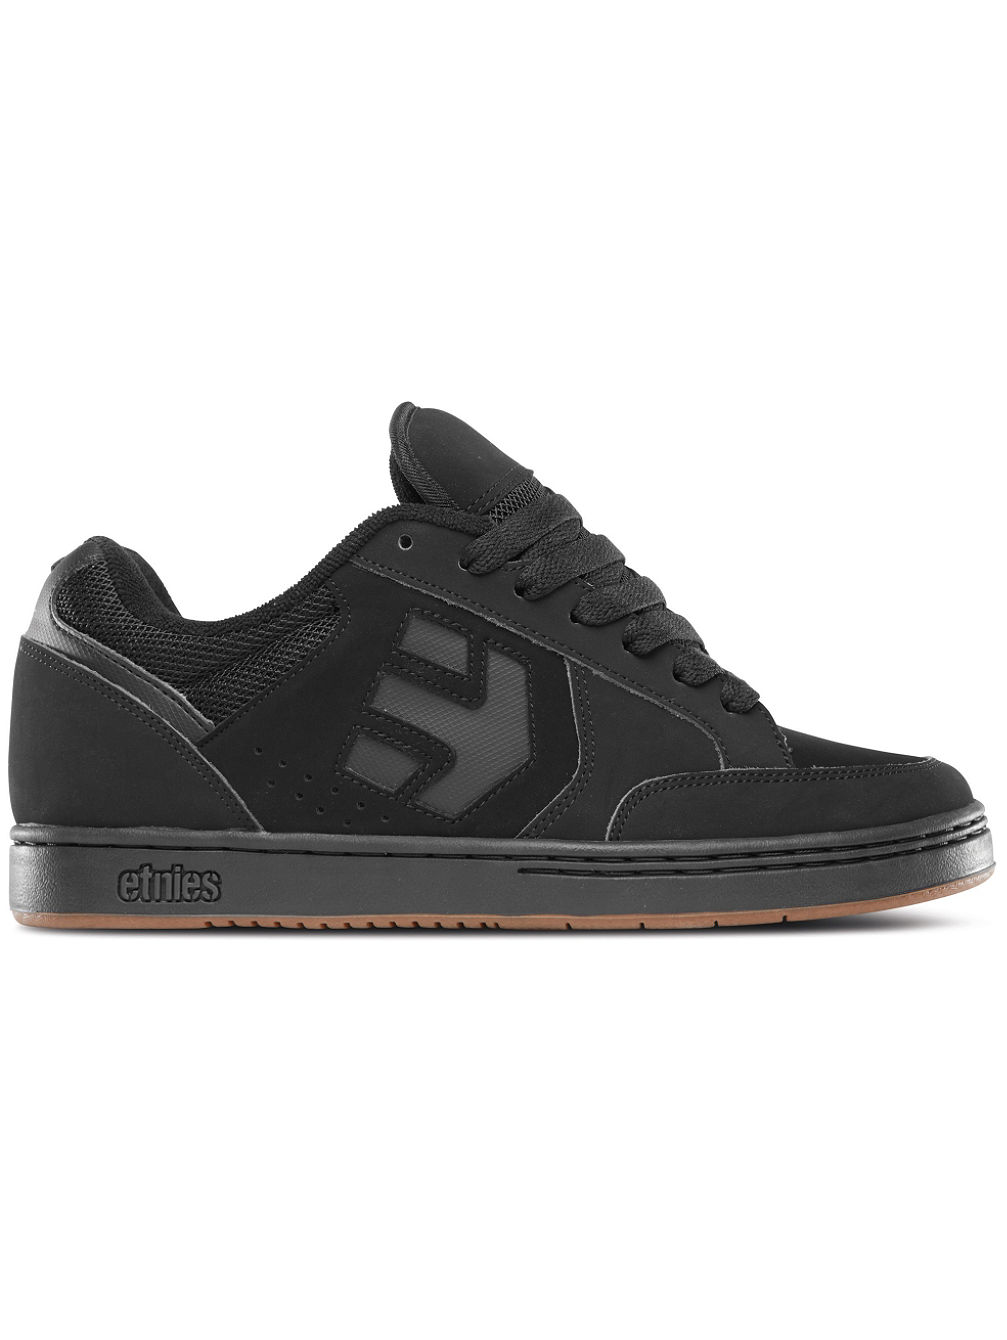 etnies-swivel-skate-shoes